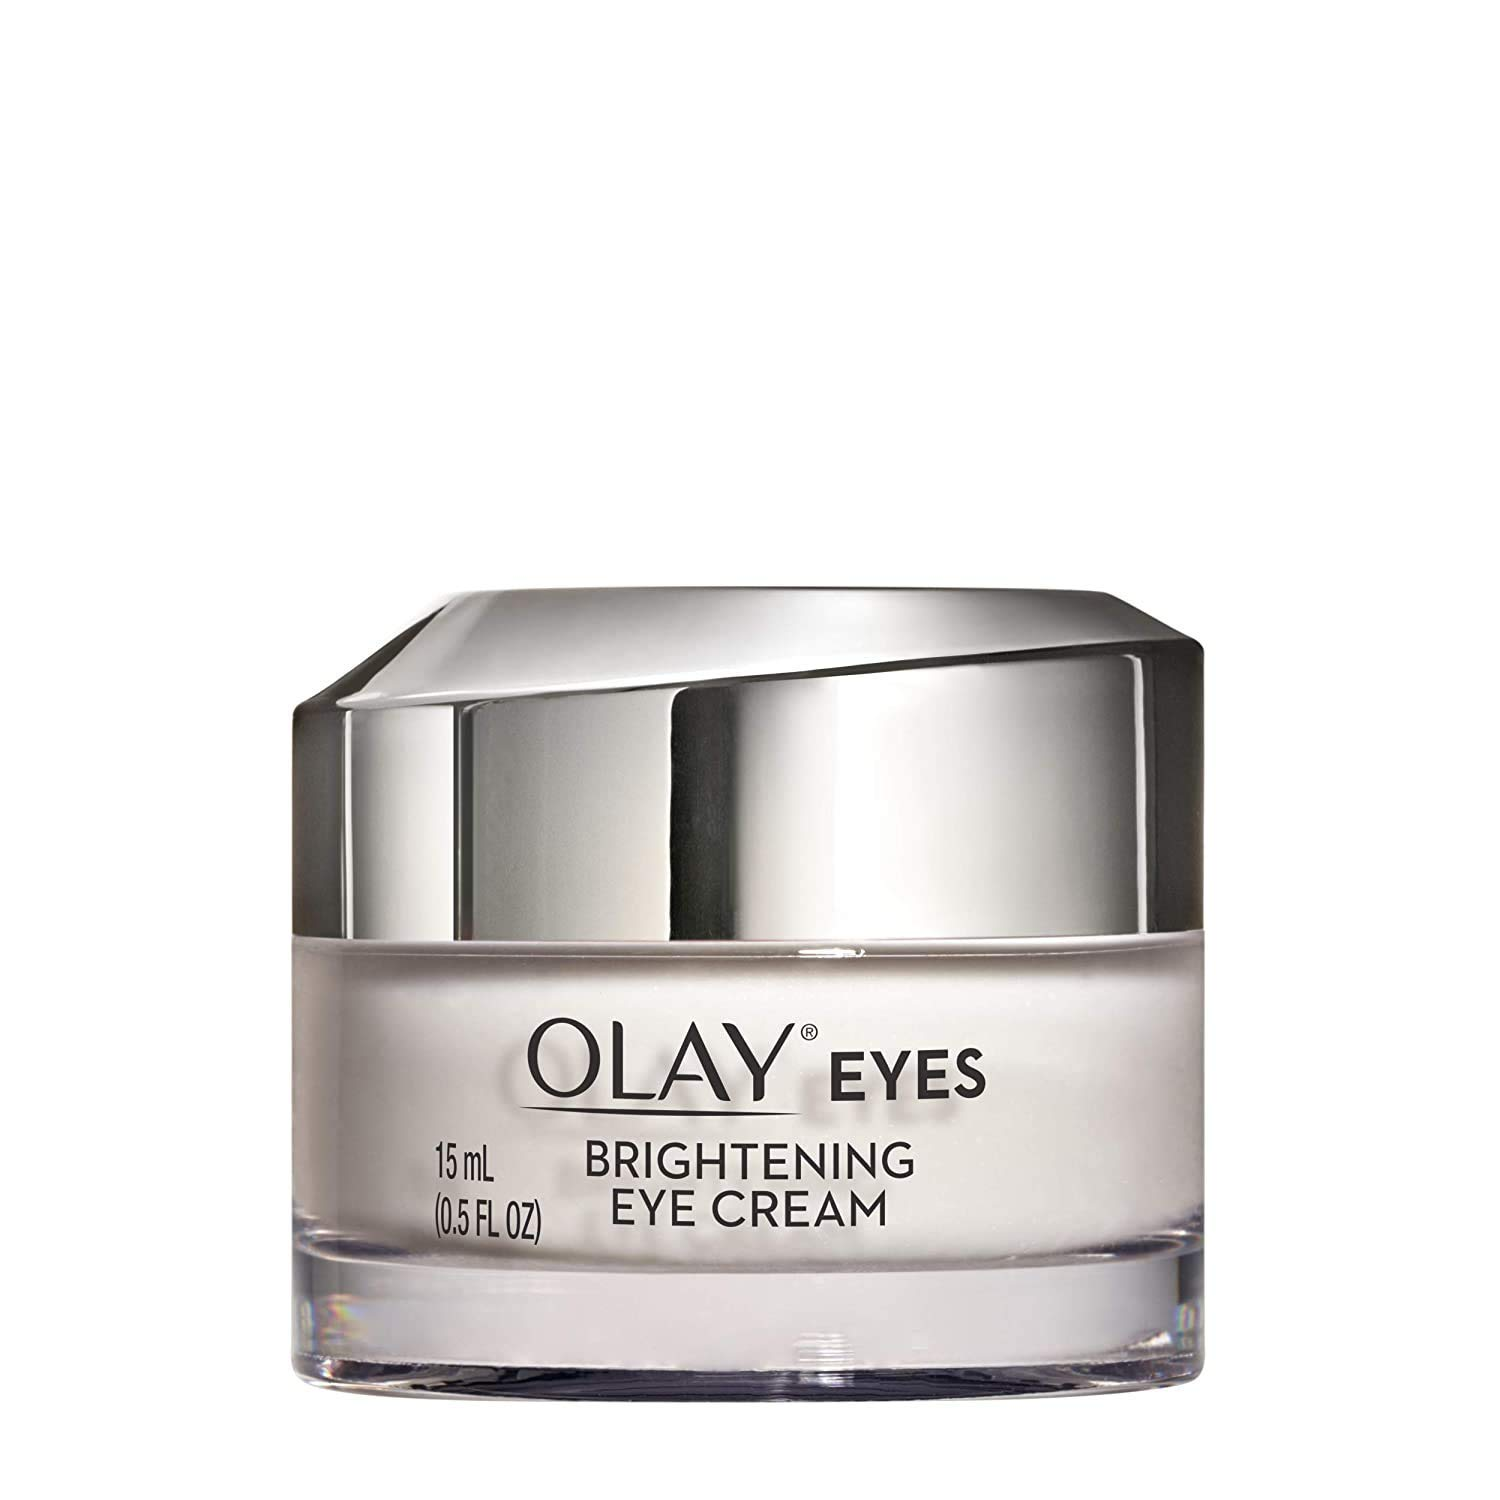 Olay Vitamin C Dark Circle Brightening Eye Cream